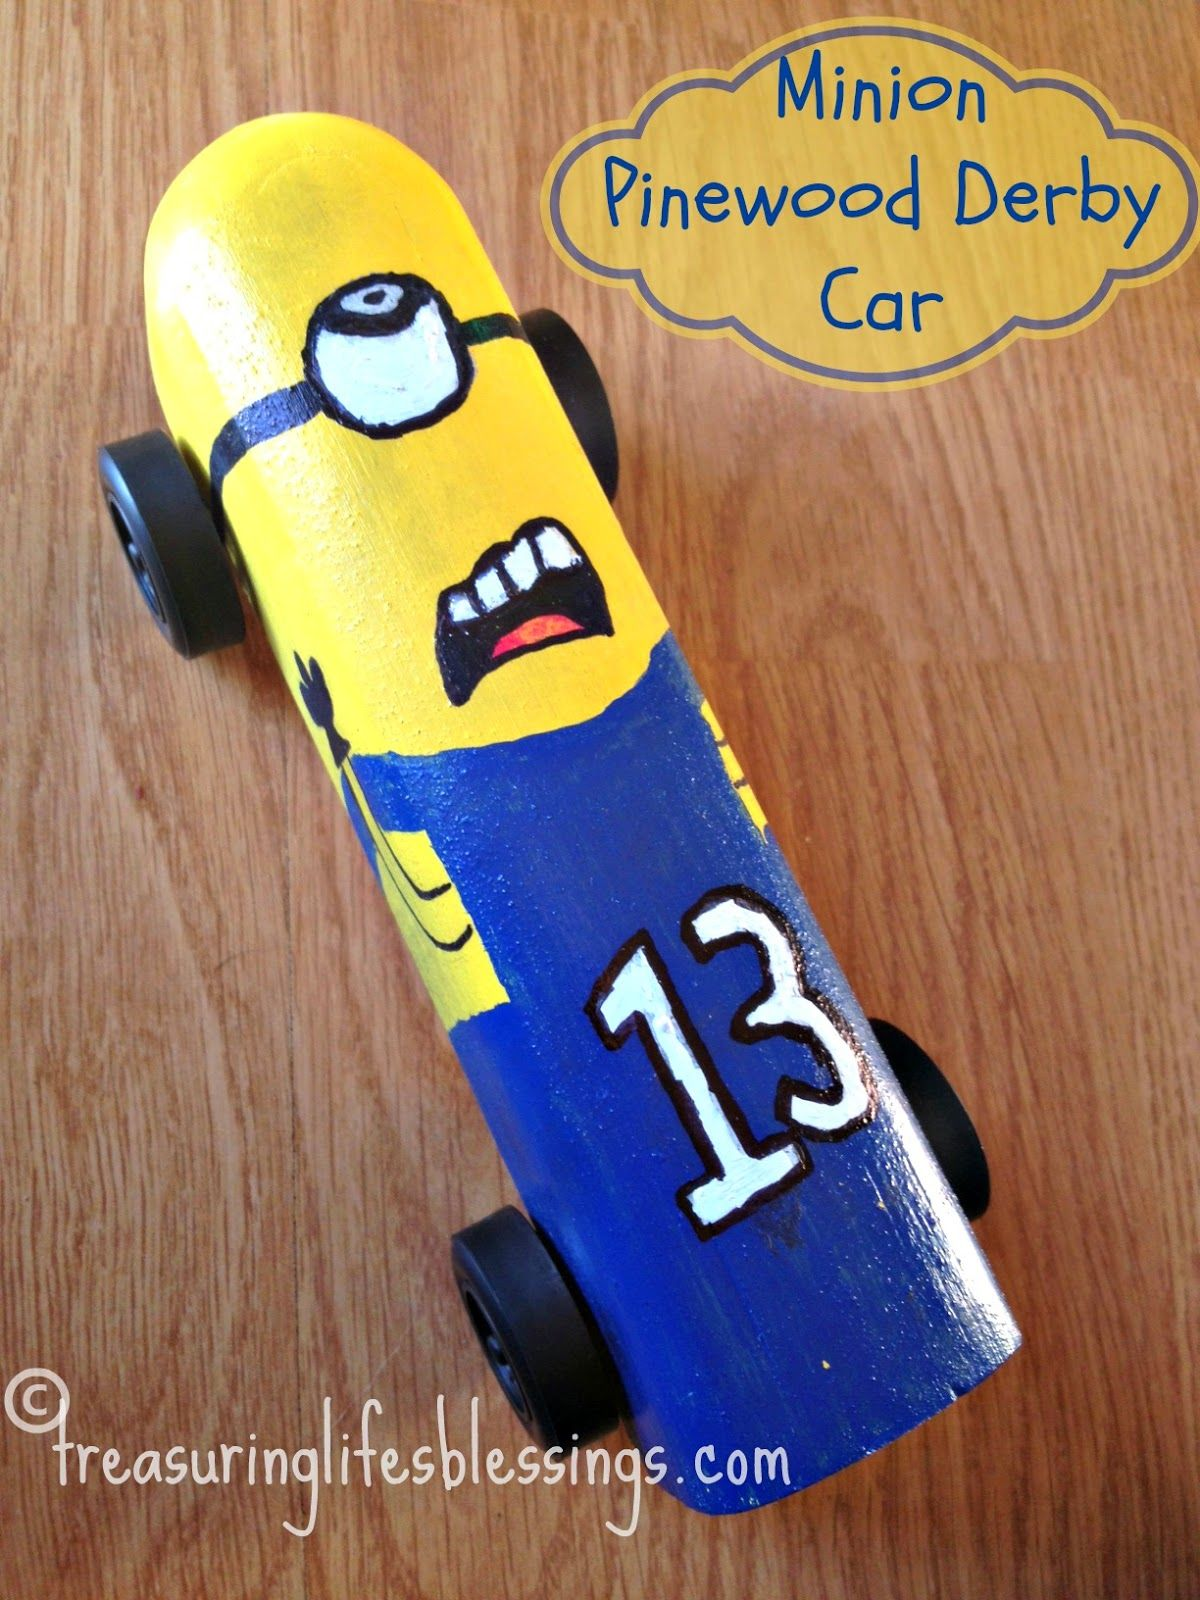 Treasuring Life's Blessings: Minion Pinewood Derby Car